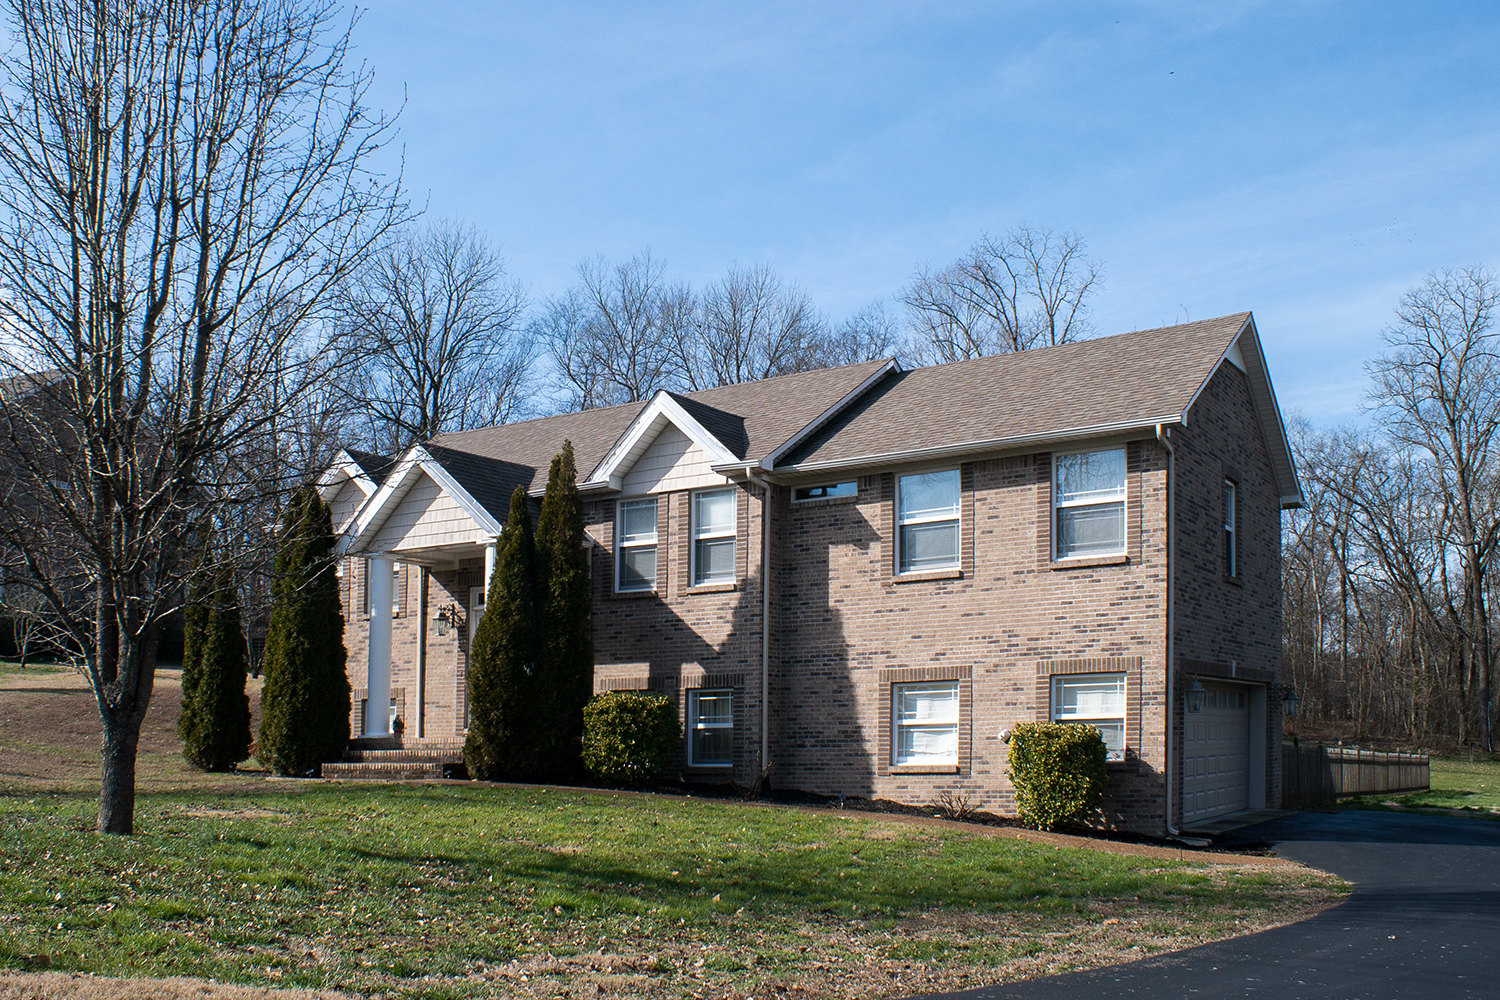 FOR SALE 1800 Holden Ct. Offered at $325,000 Spring Hill - Beautiful all brick home on 1.33 acres, 3 bedroom/3 bath